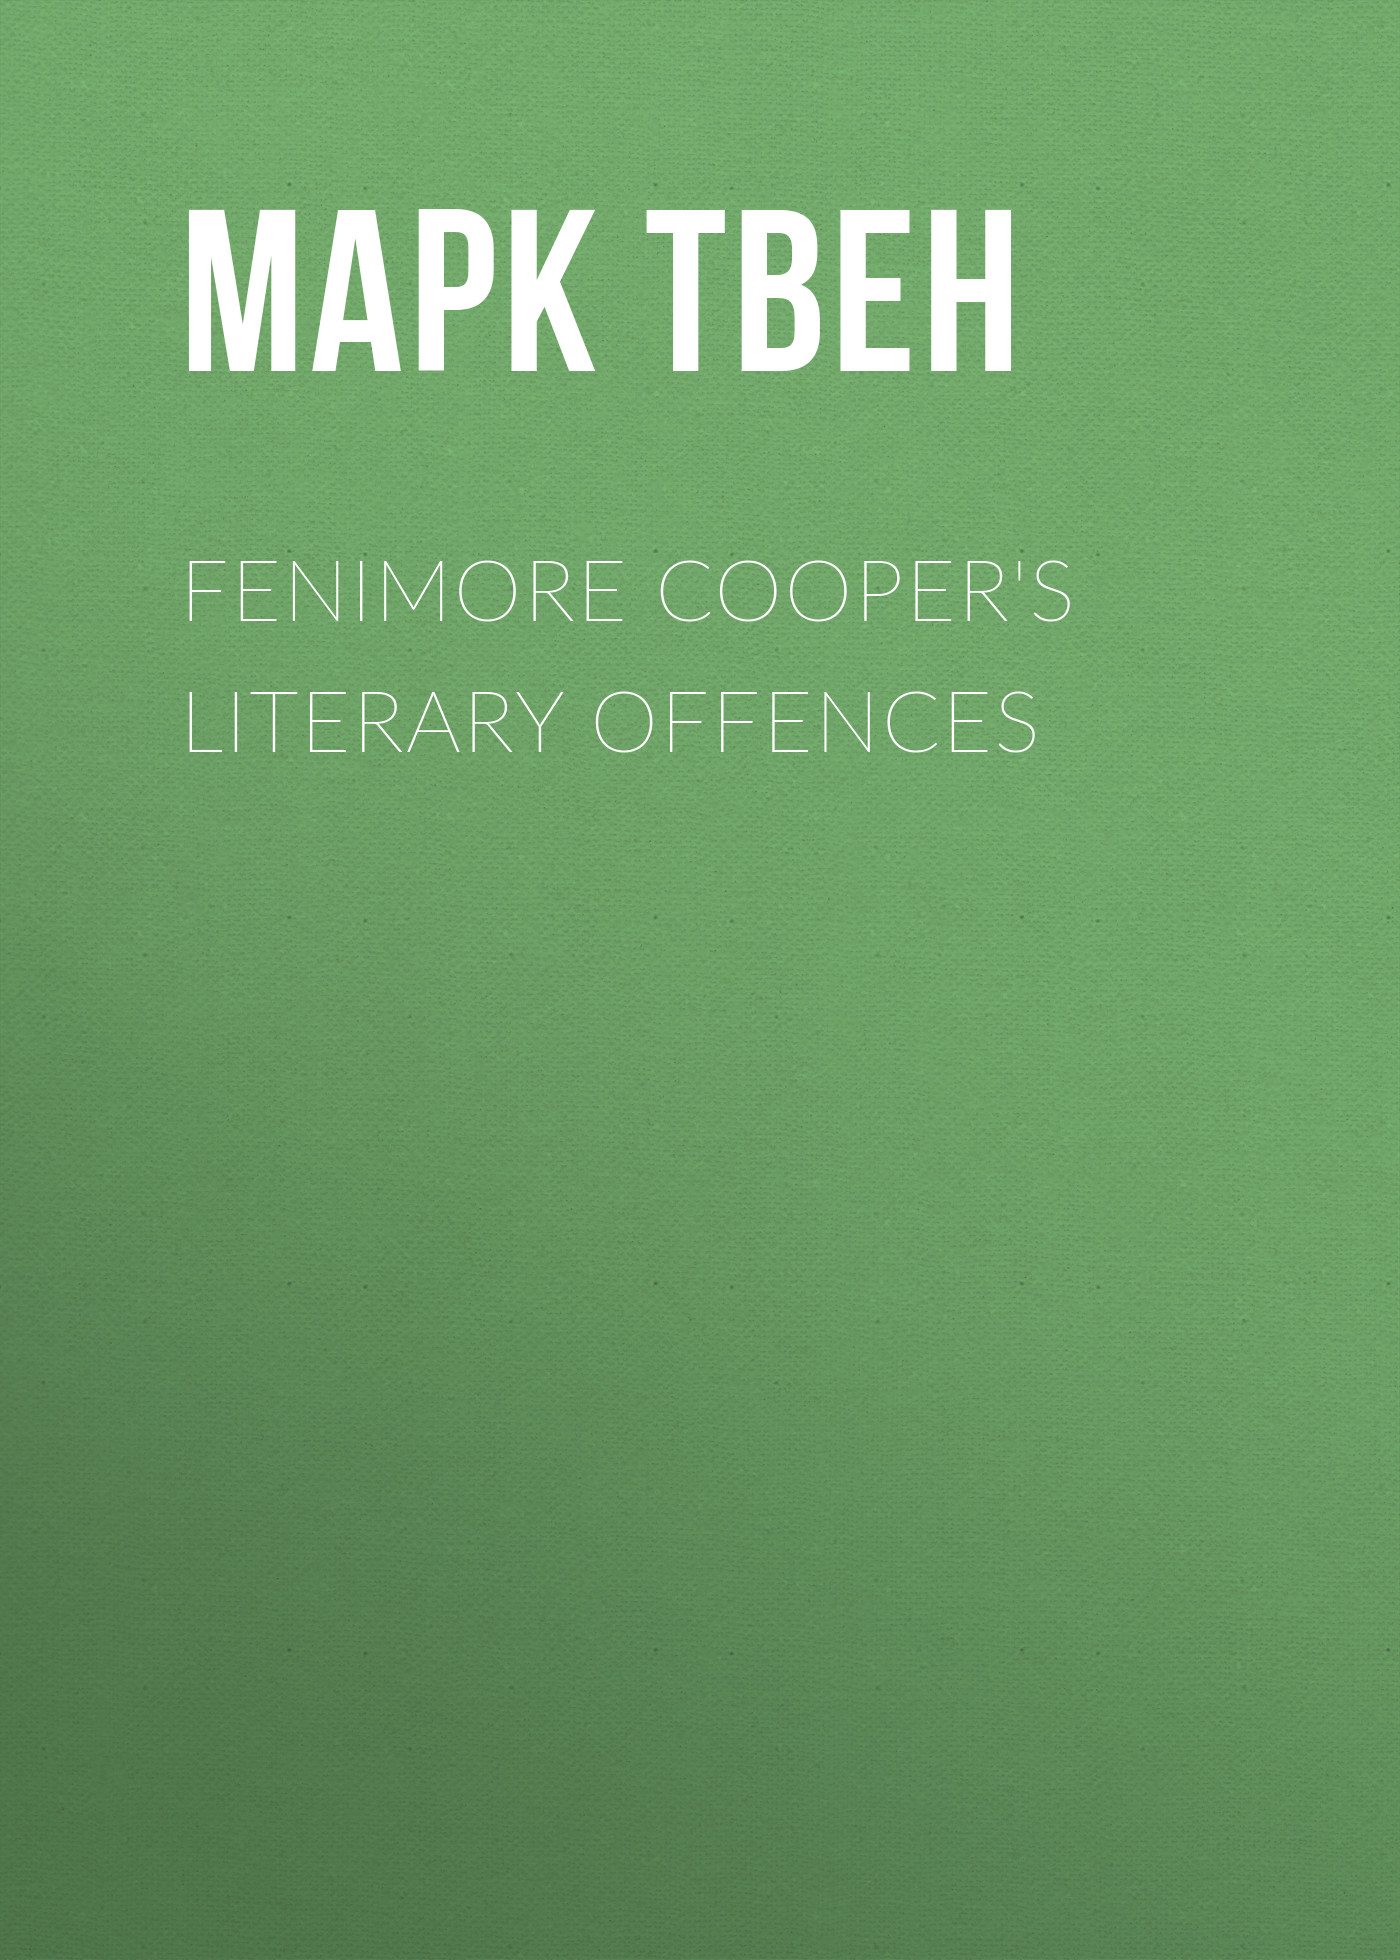 fenimore coopers literary offences